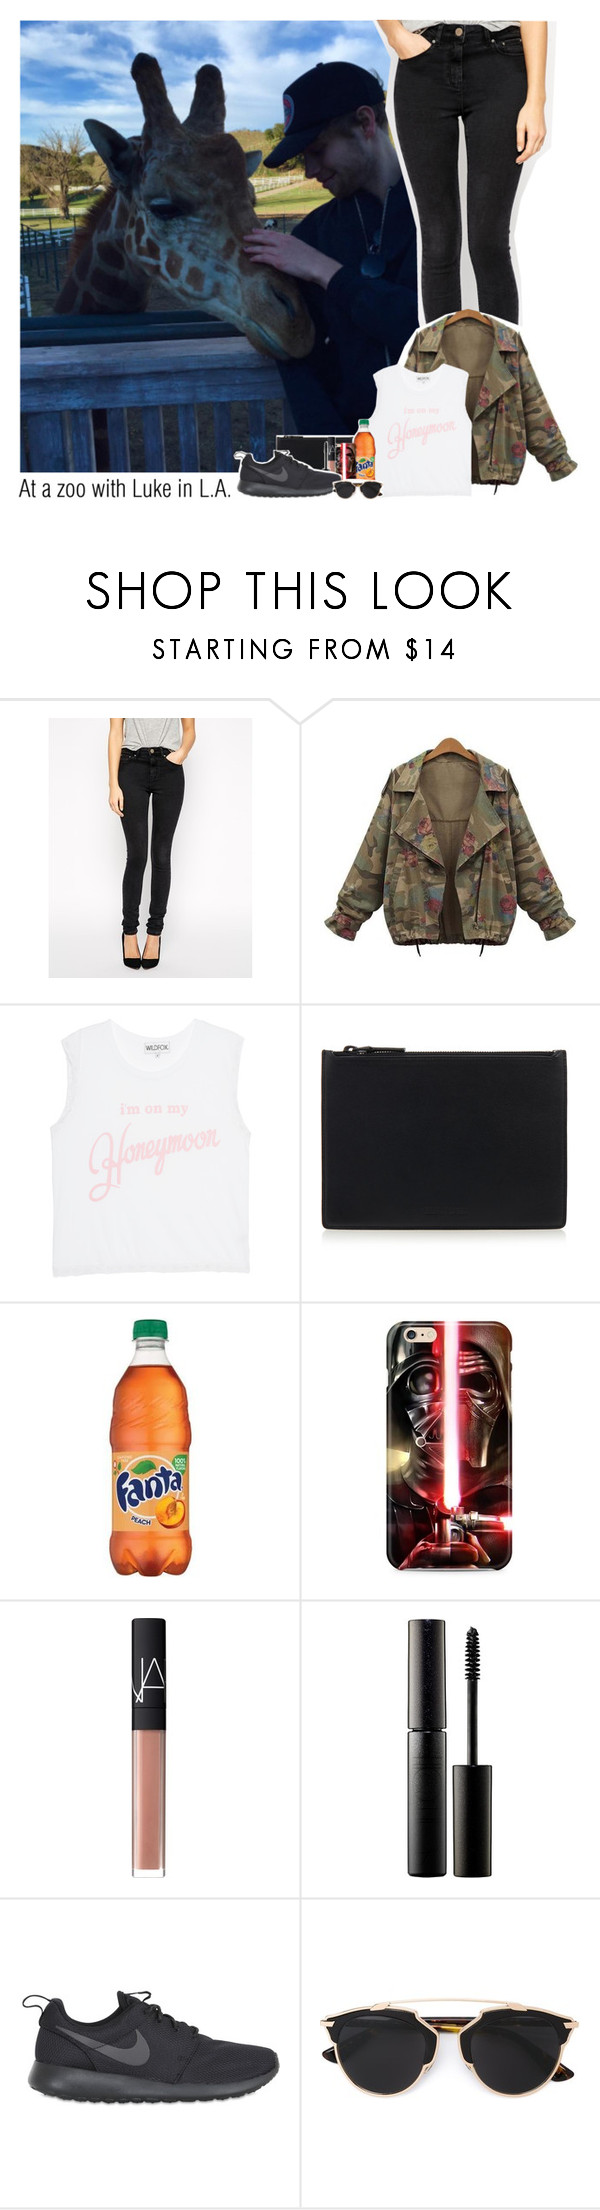 """At a zoo with Luke in L.A."" by ndvalenciano ❤ liked on Polyvore featuring ASOS, Wildfox, Helmut Lang, NARS Cosmetics, Surratt, NIKE, Christian Dior, women's clothing, women and female"